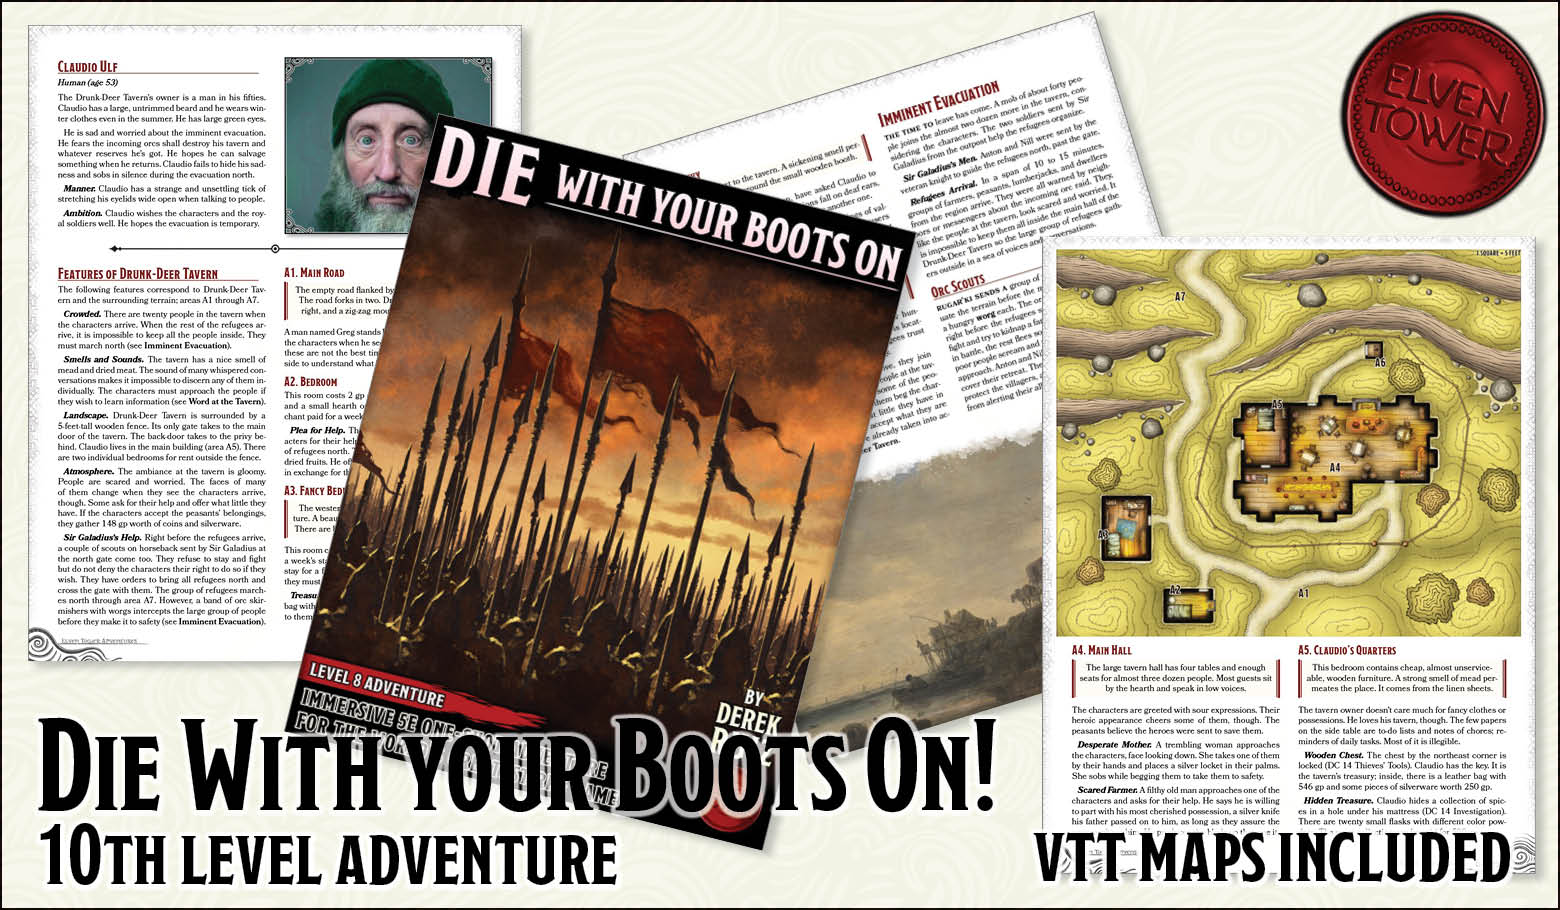 S_-_Die_With_Your_Boots_On_-_promo1.jpg